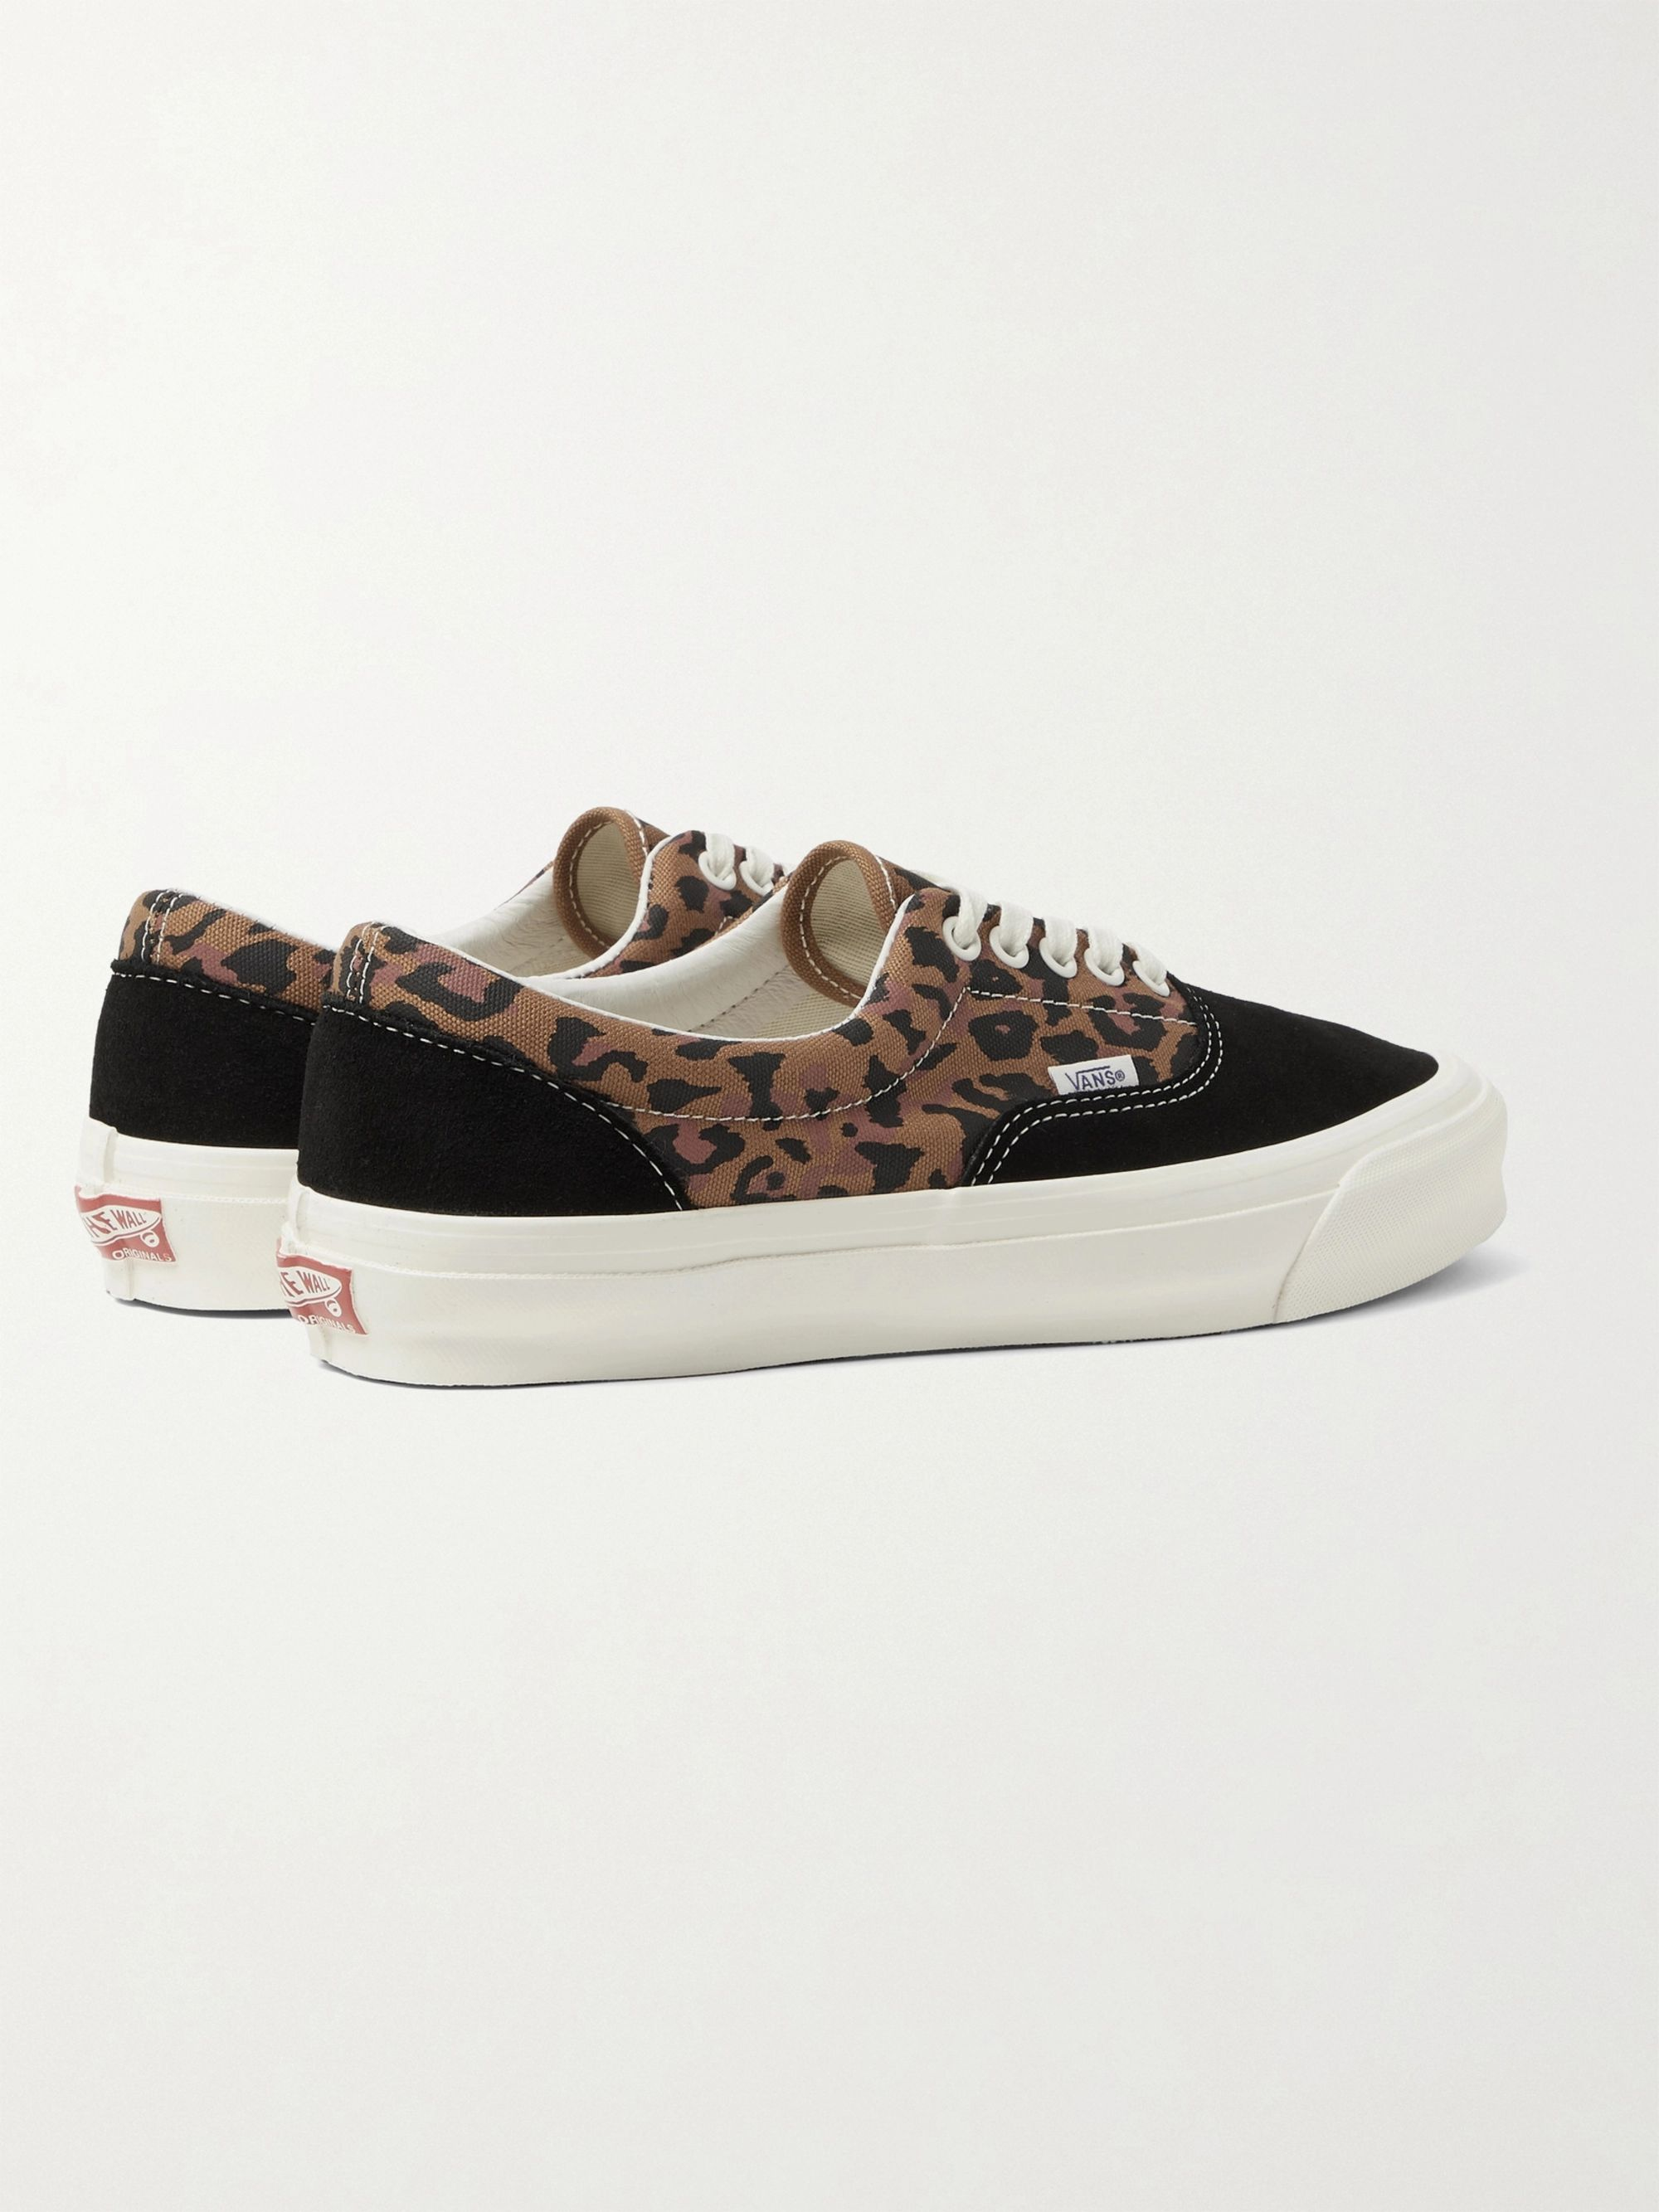 Vans UA OG Era LX Printed Canvas and Suede Sneakers